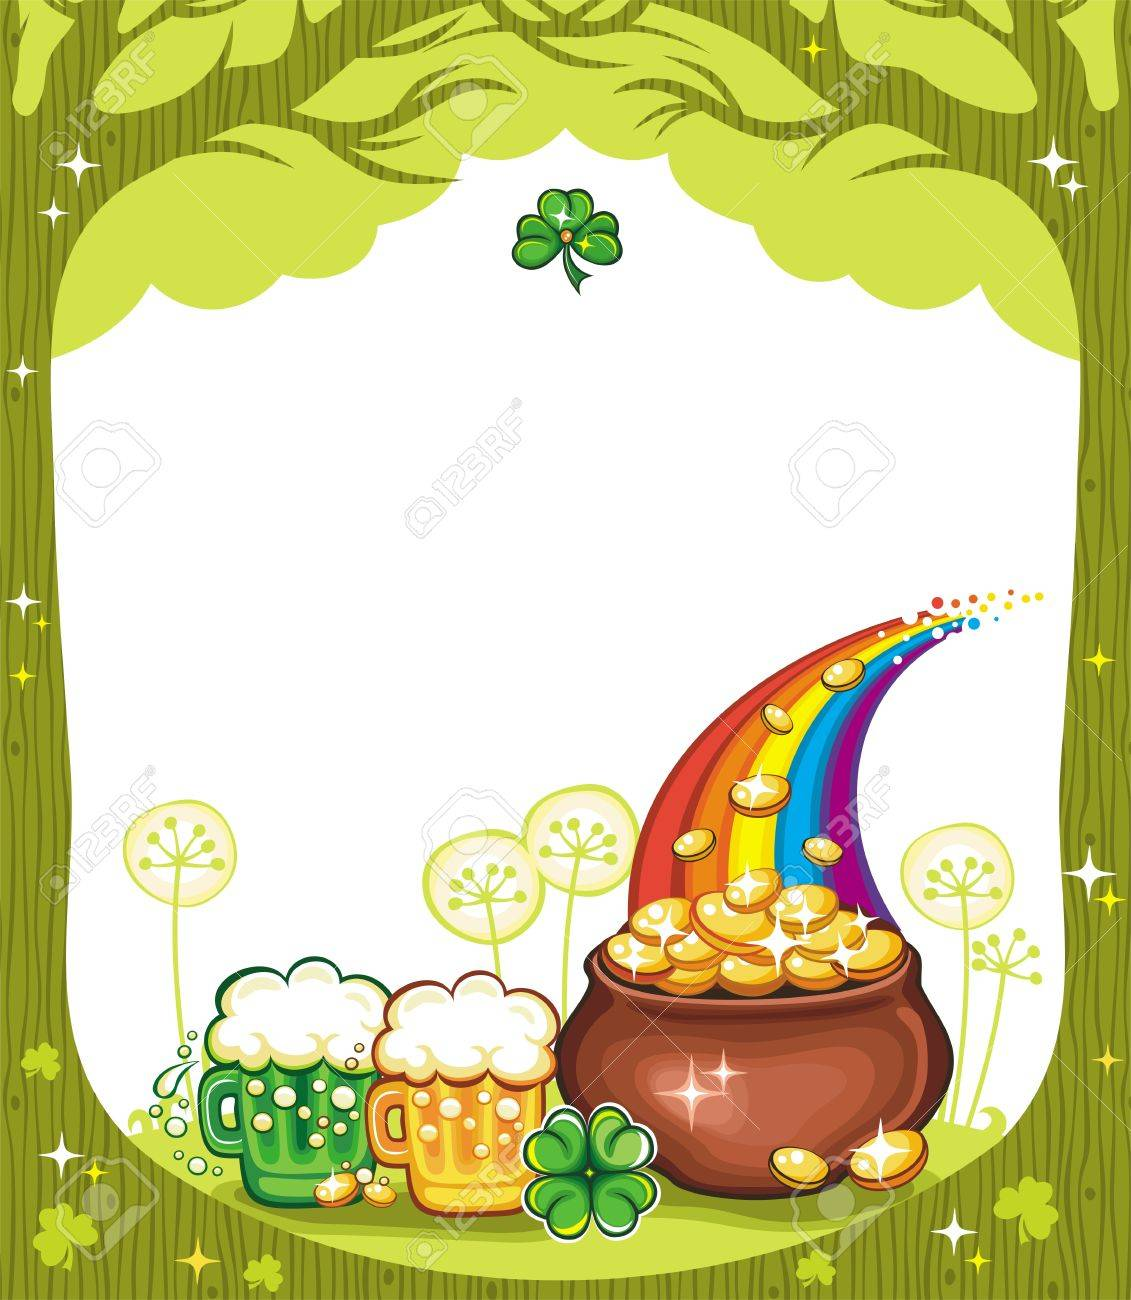 St. Patricks Day frame with trees, pot of gold, beer mugs, clover. Stock Vector - 12483748